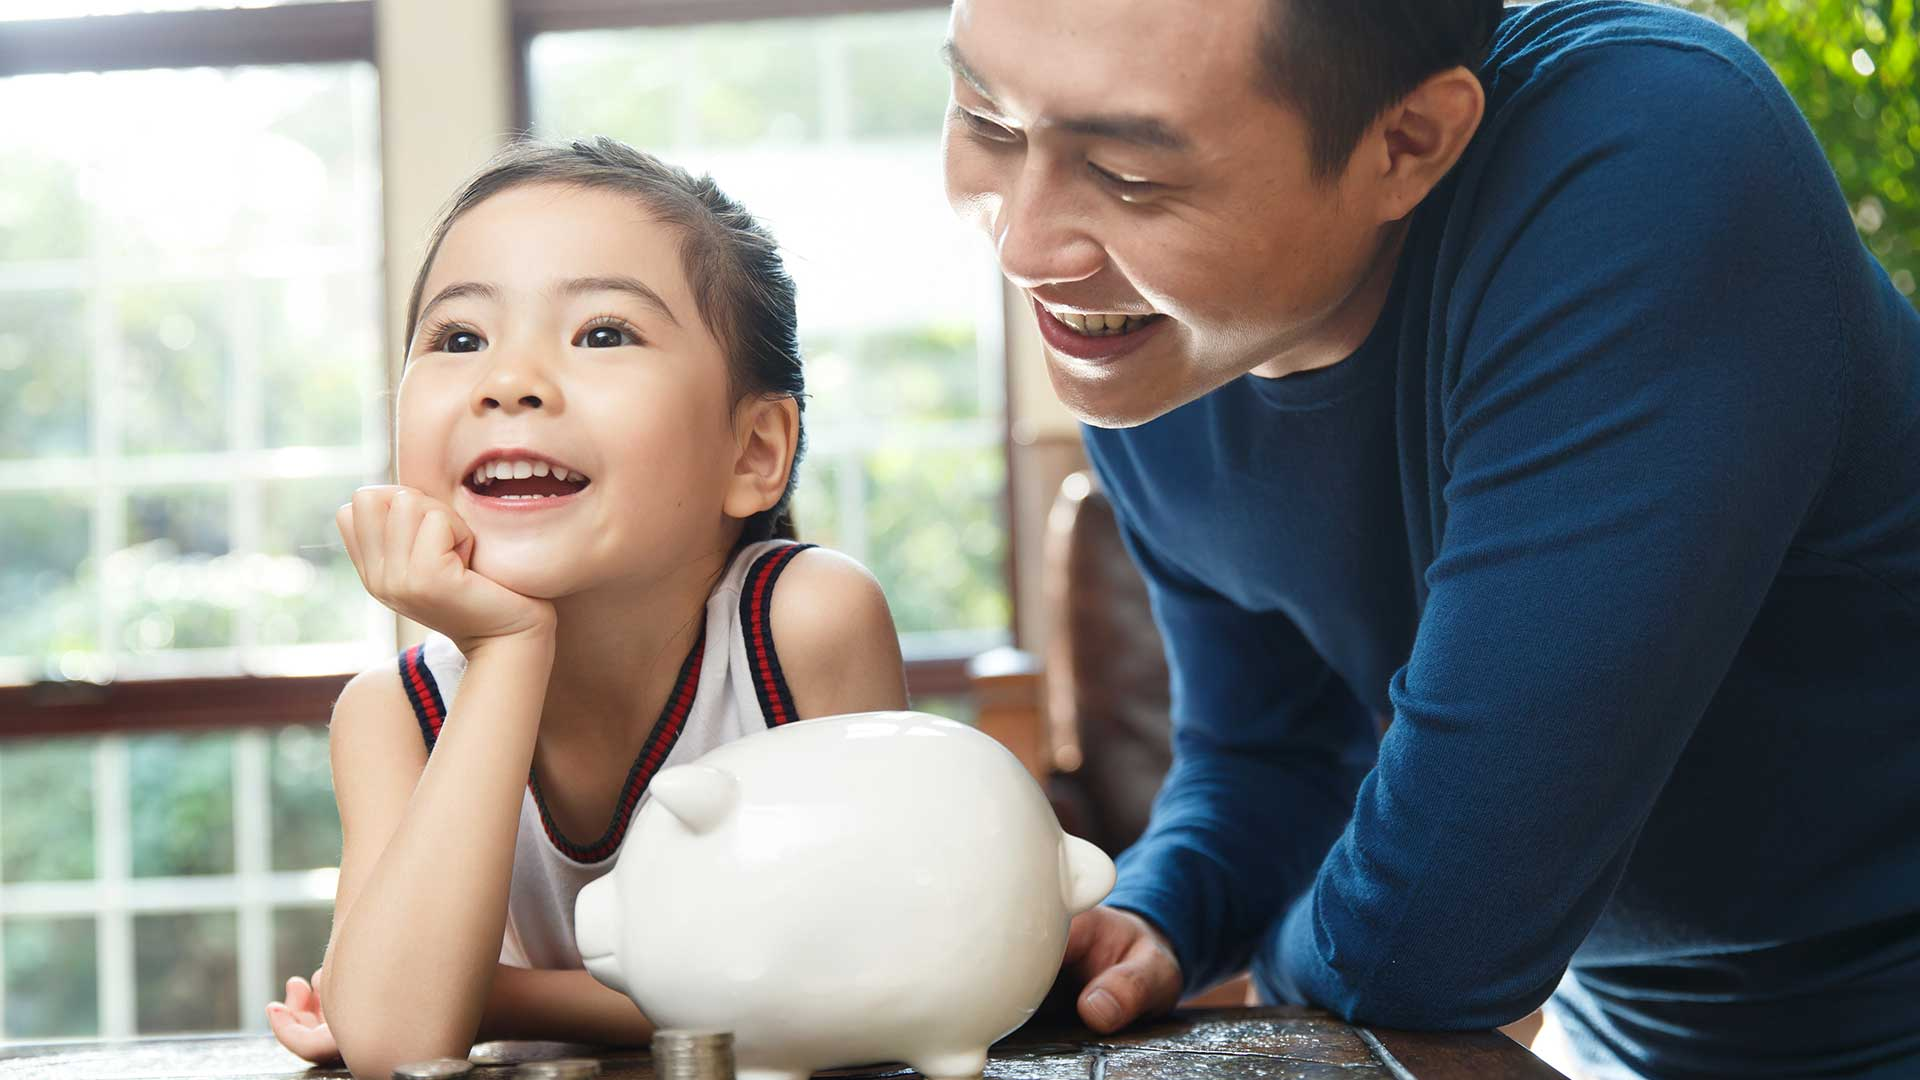 father ,daughter and piggy bank; the image used for wealth education